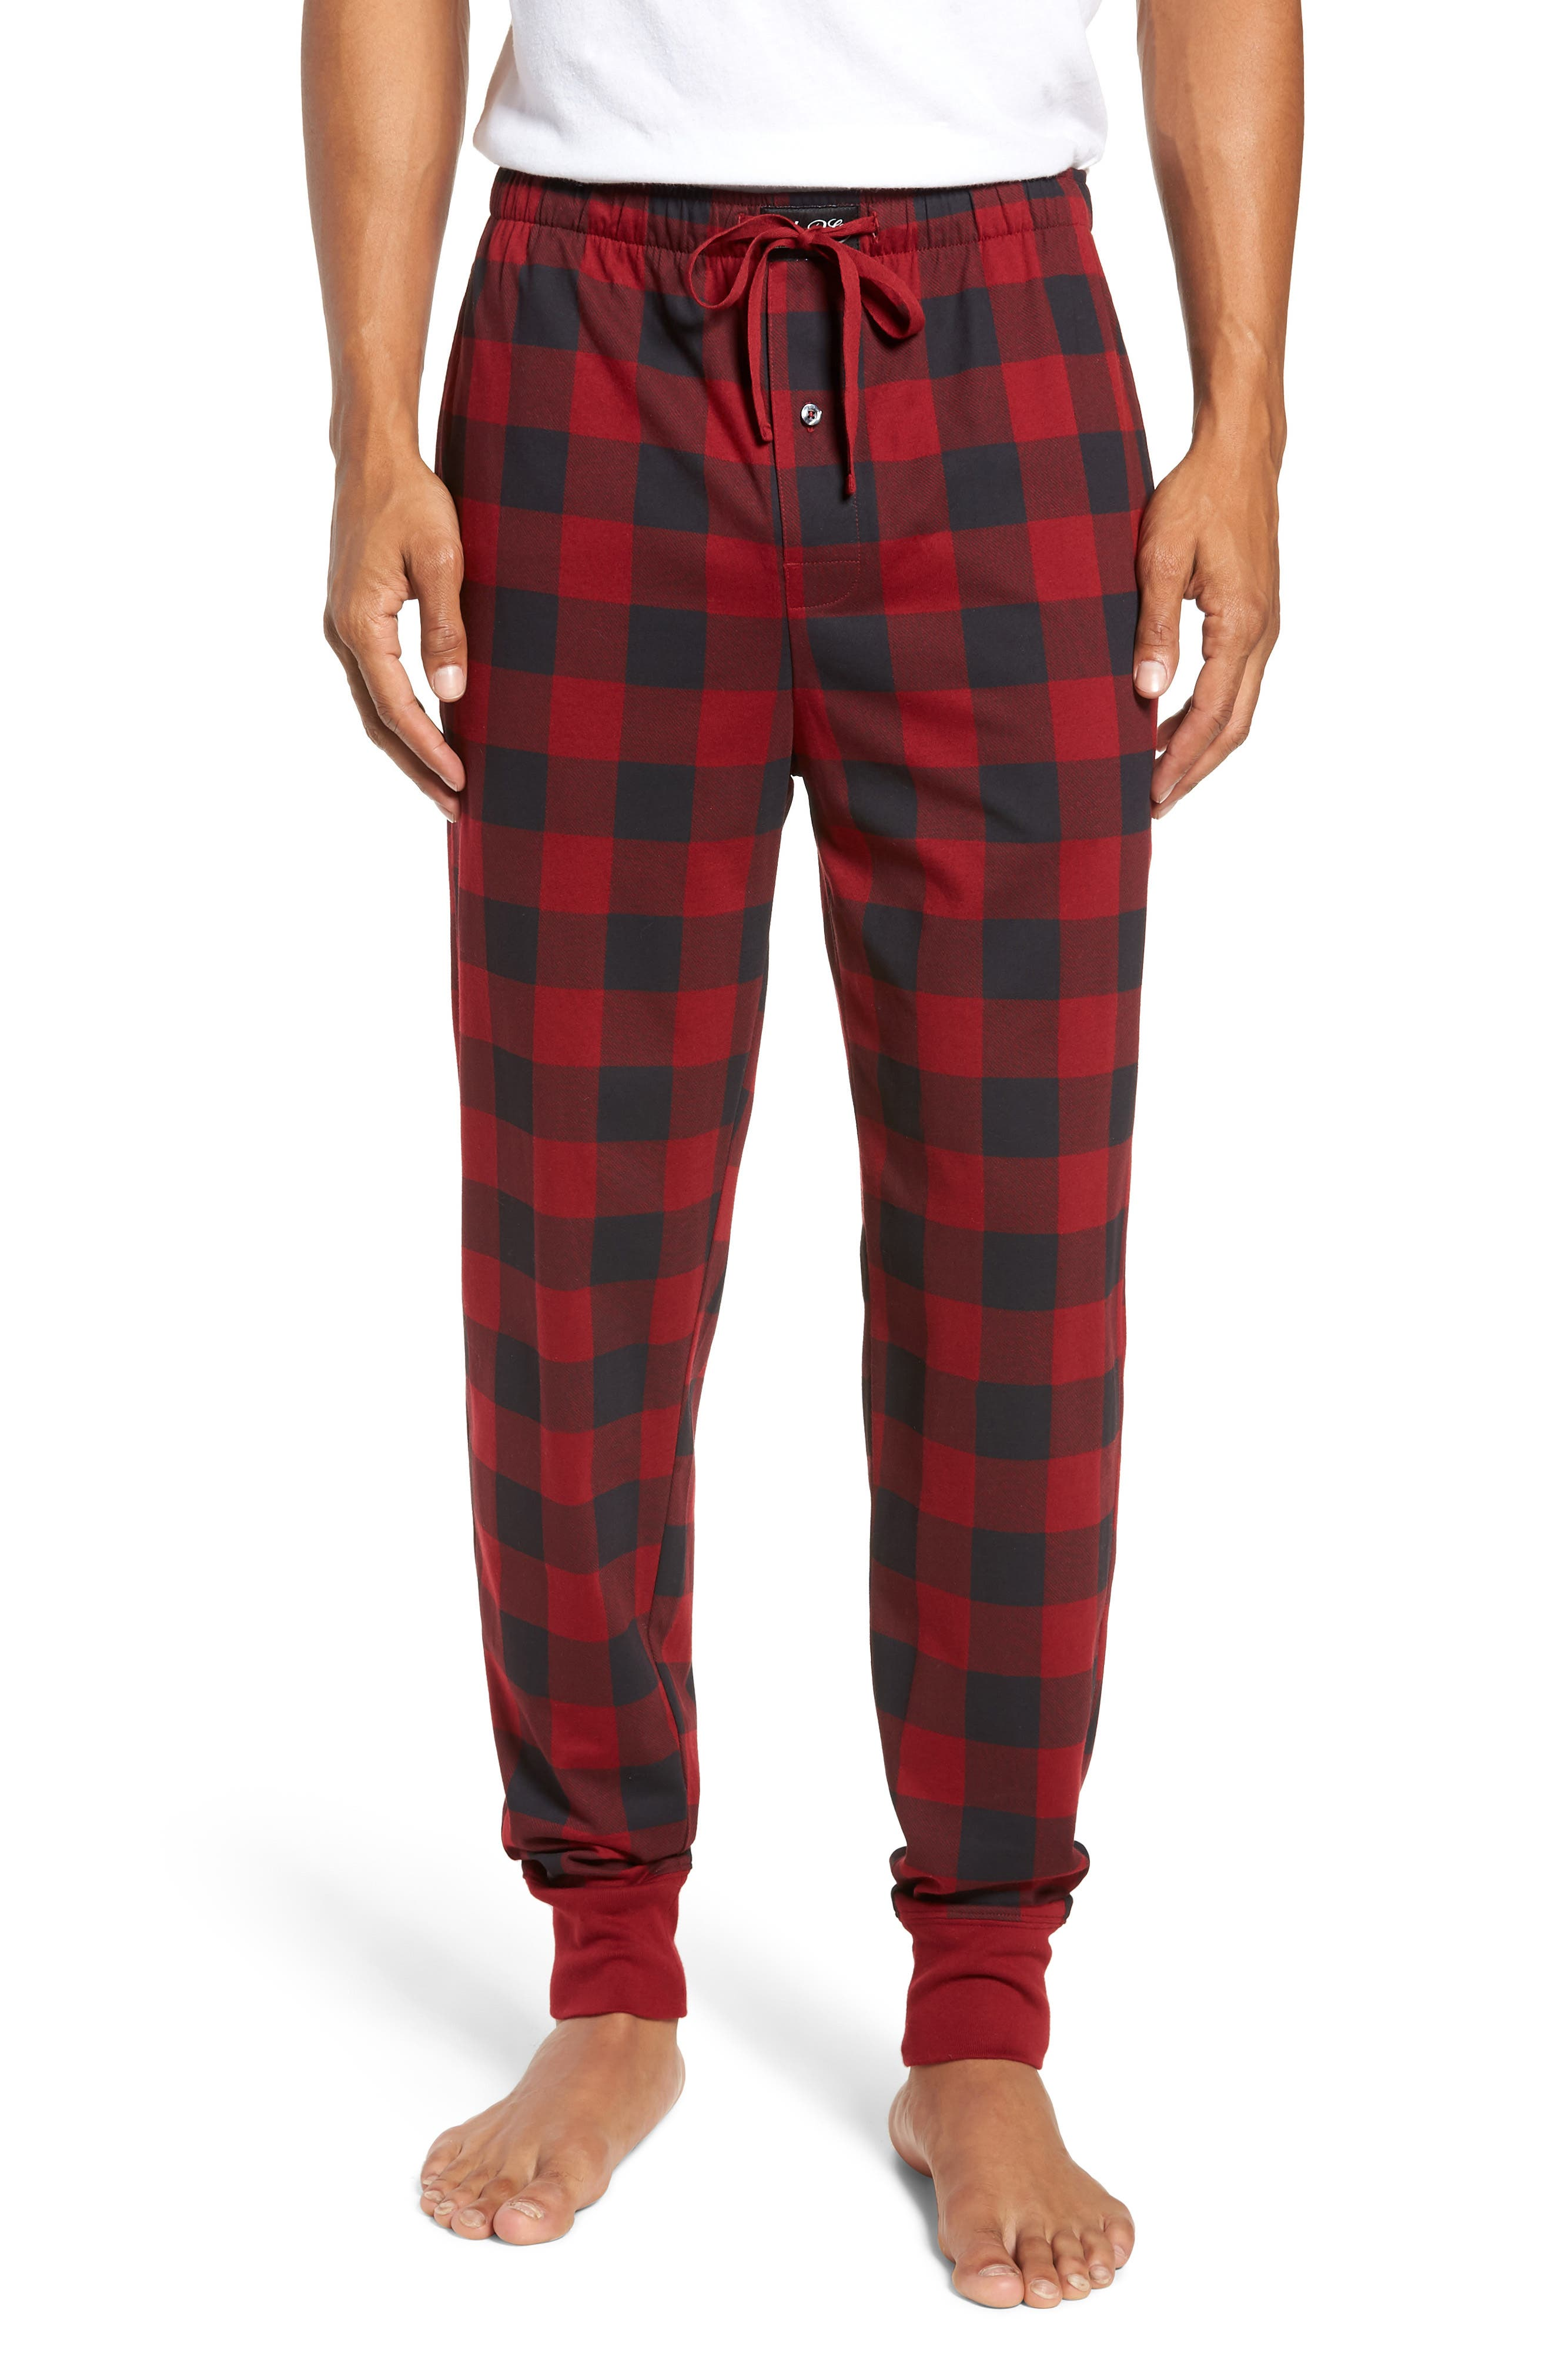 Cotton Lounge Pants,                         Main,                         color, HOLIDAY RED